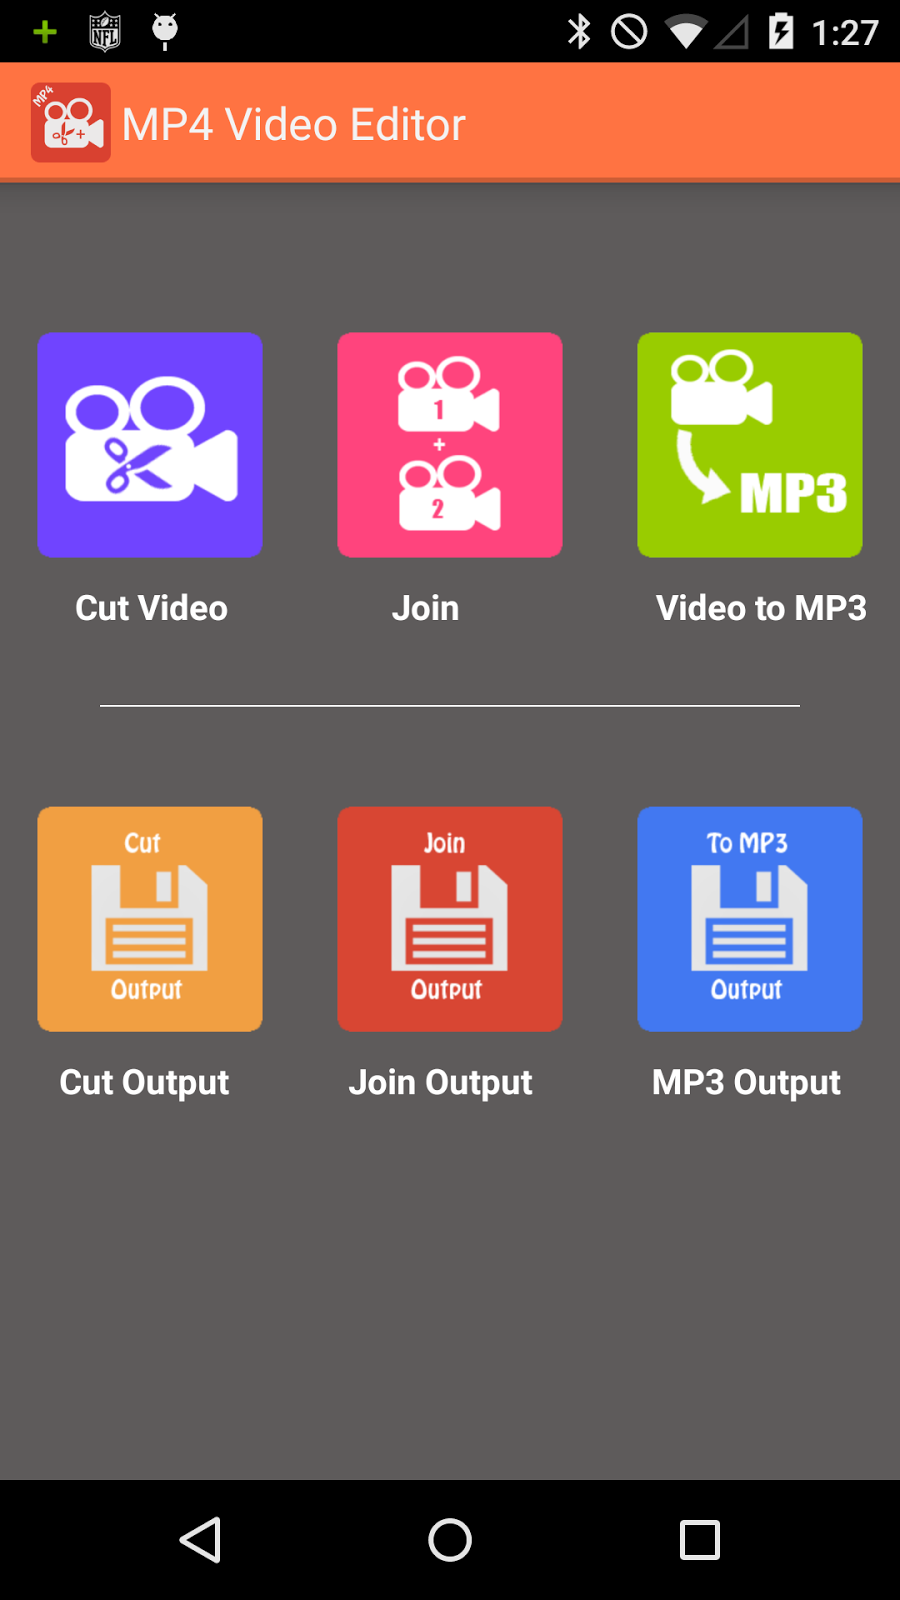 how to cut mp4 video